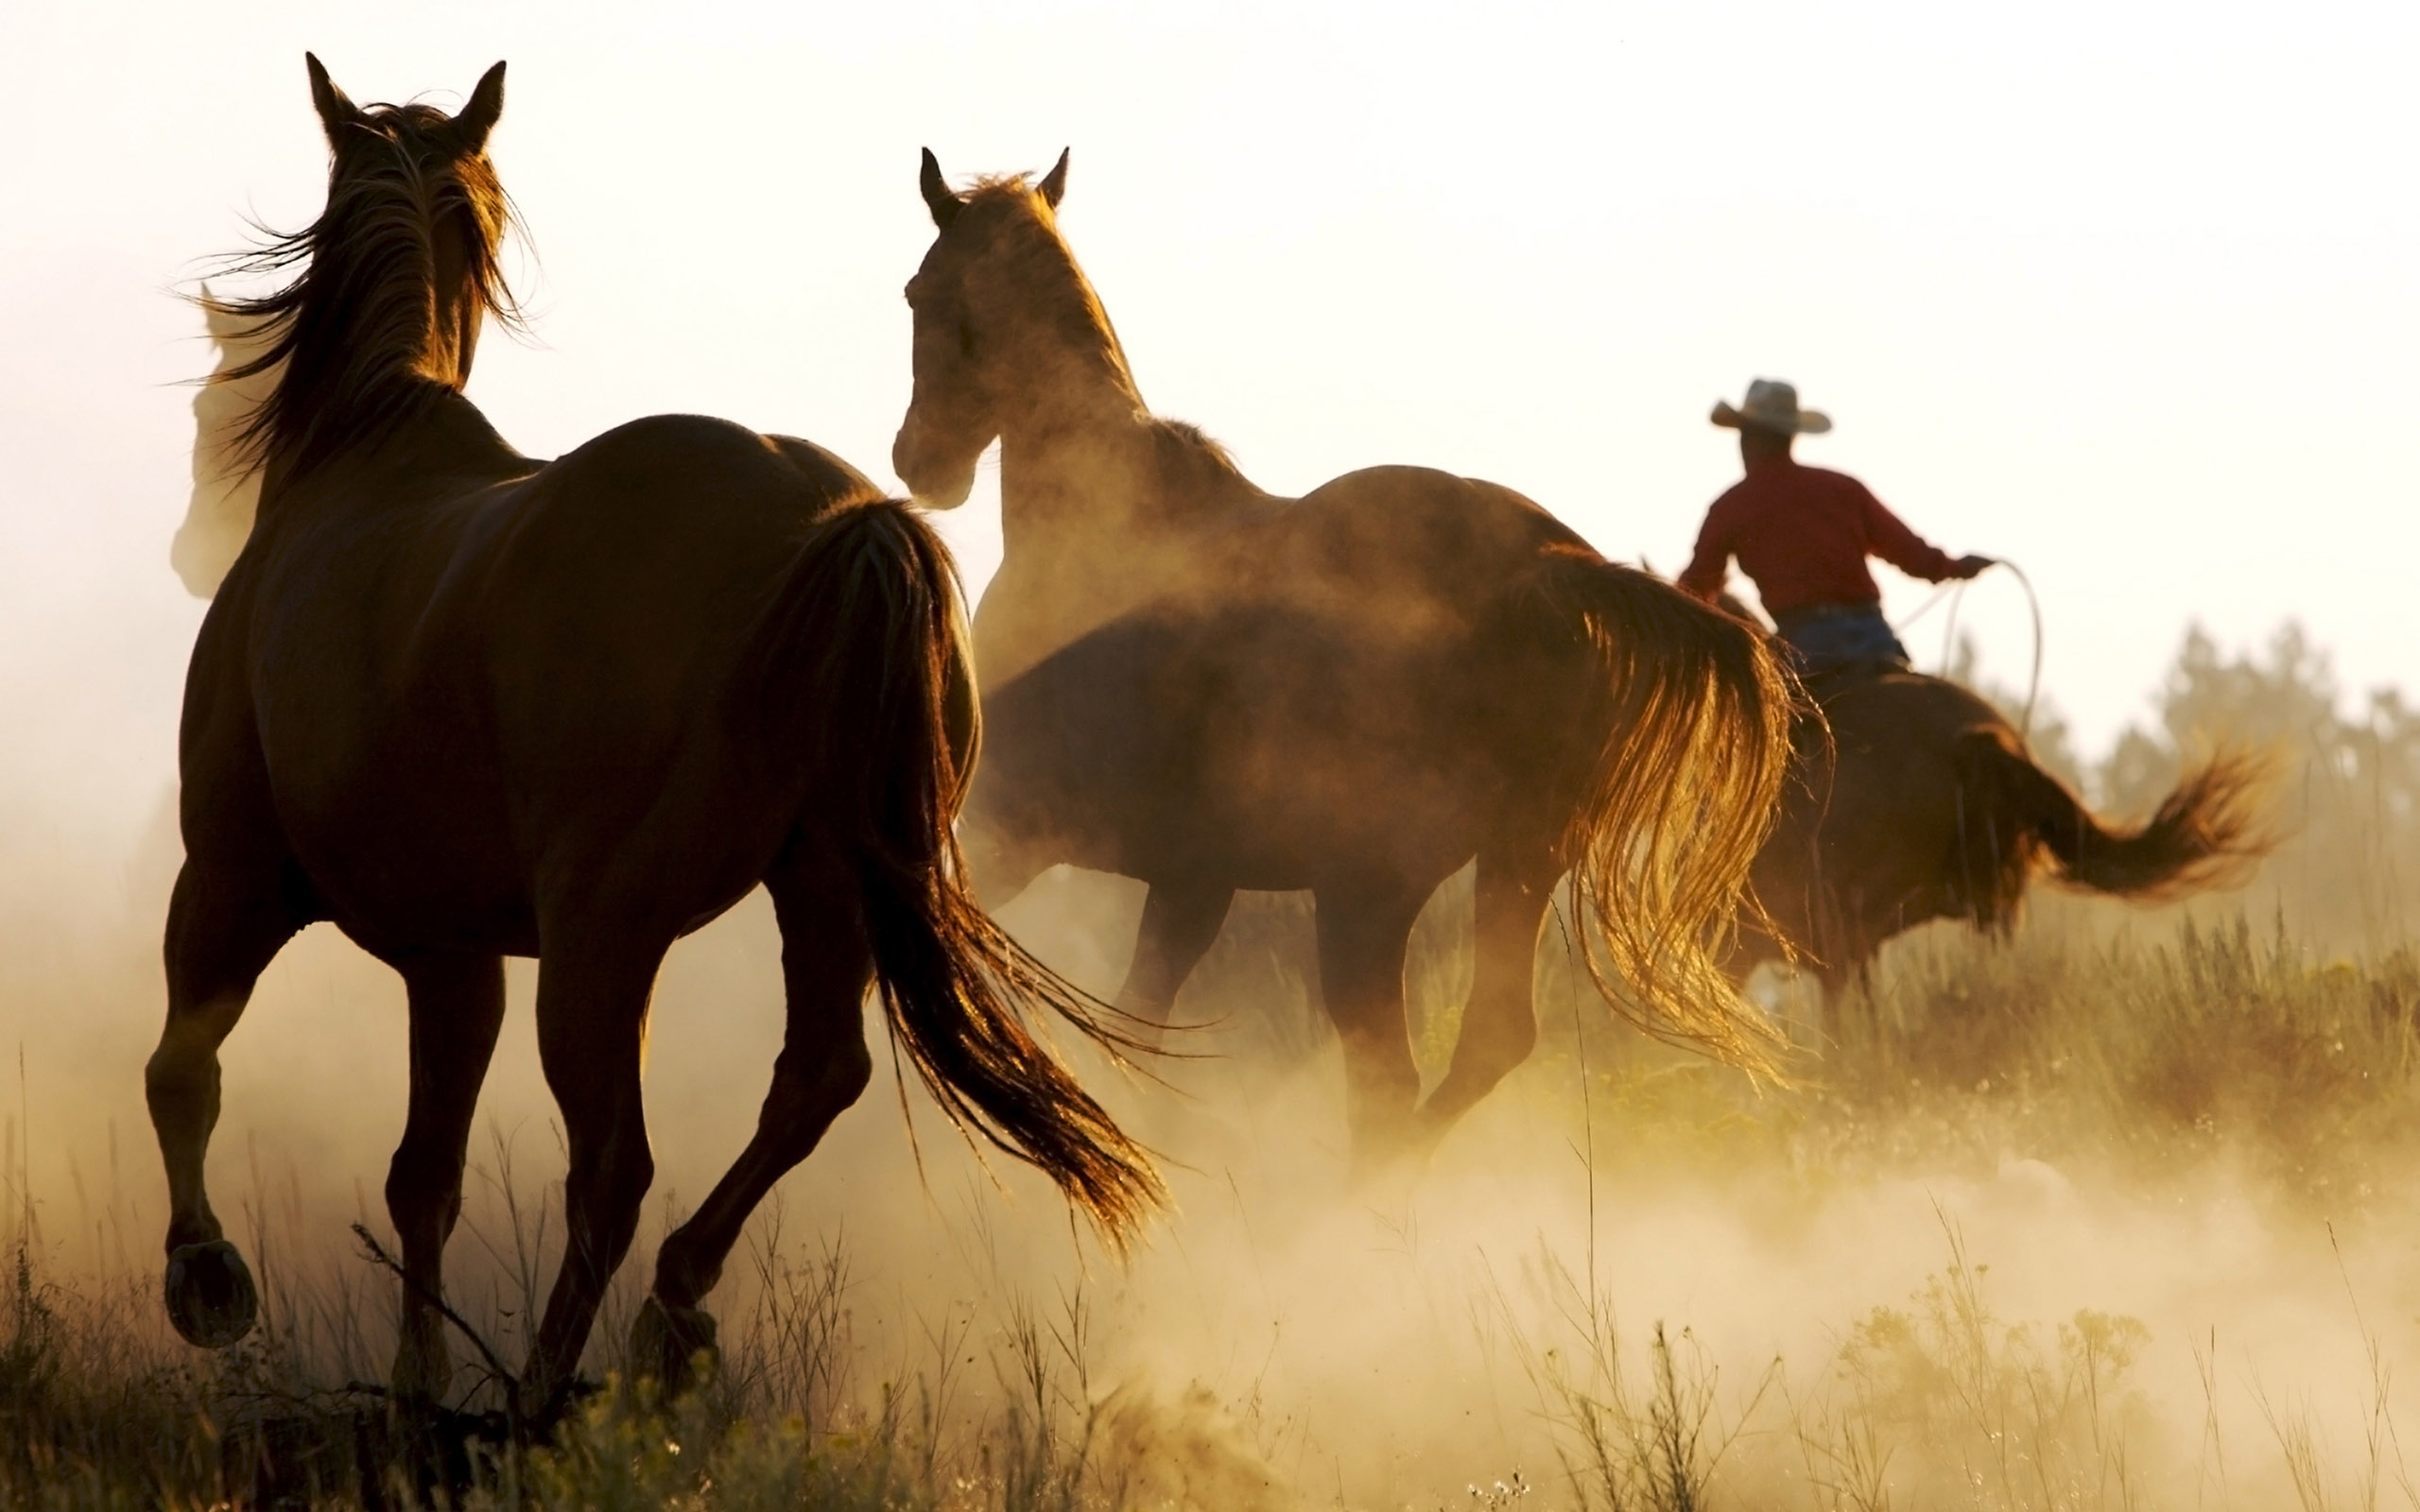 Horse images wallpaper impremedia horse wallpaper horses running wallpapers hd wallpapers 95804 voltagebd Choice Image